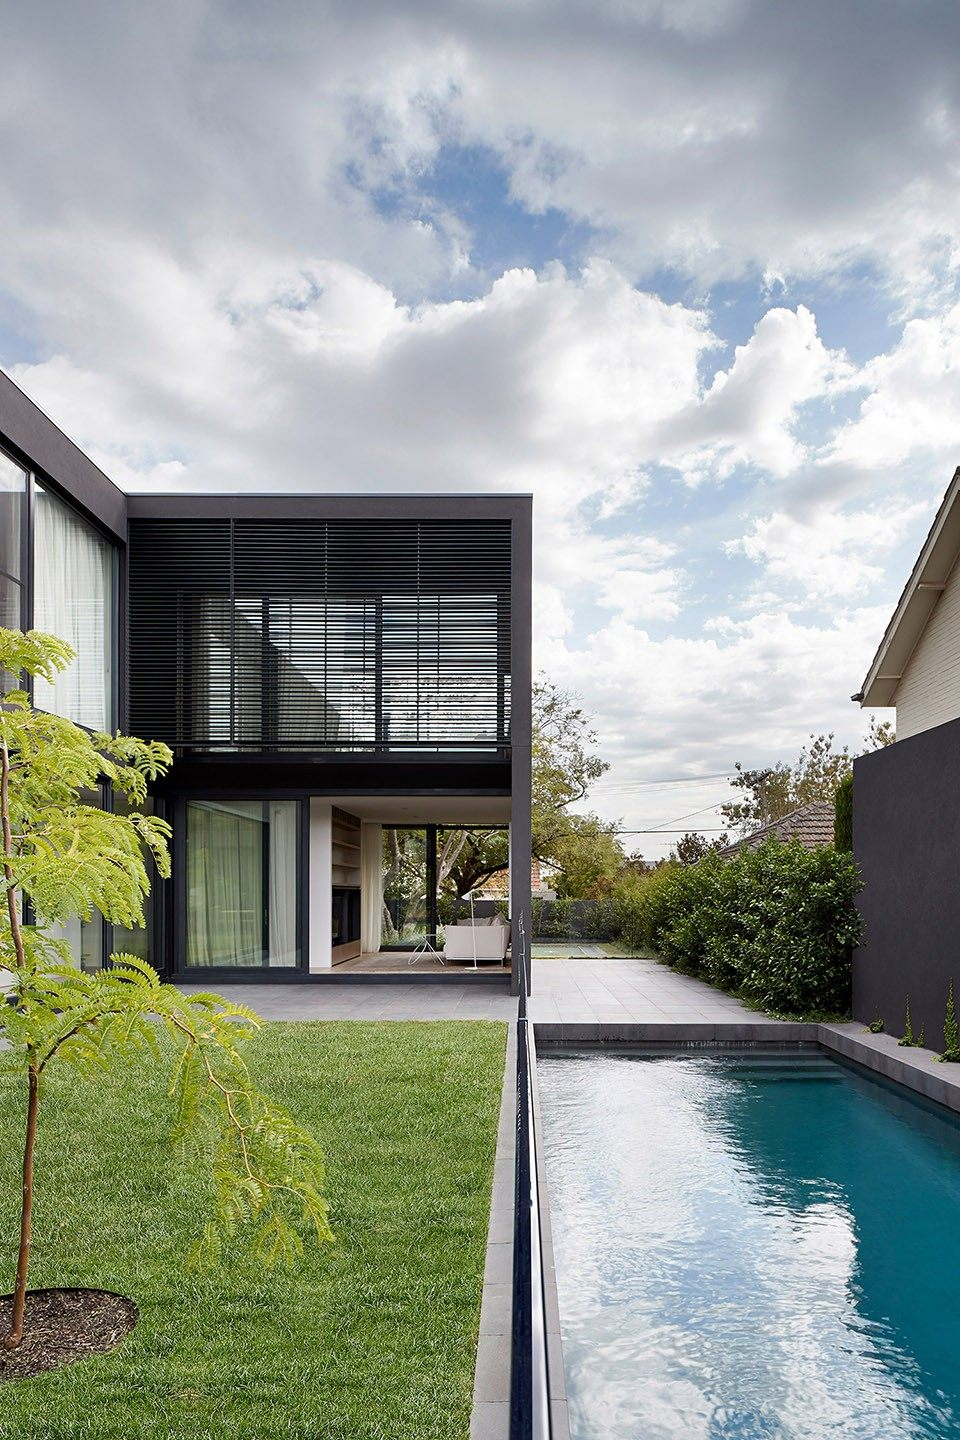 6-mayfield-avenue-residence-by-studiofour.jpg